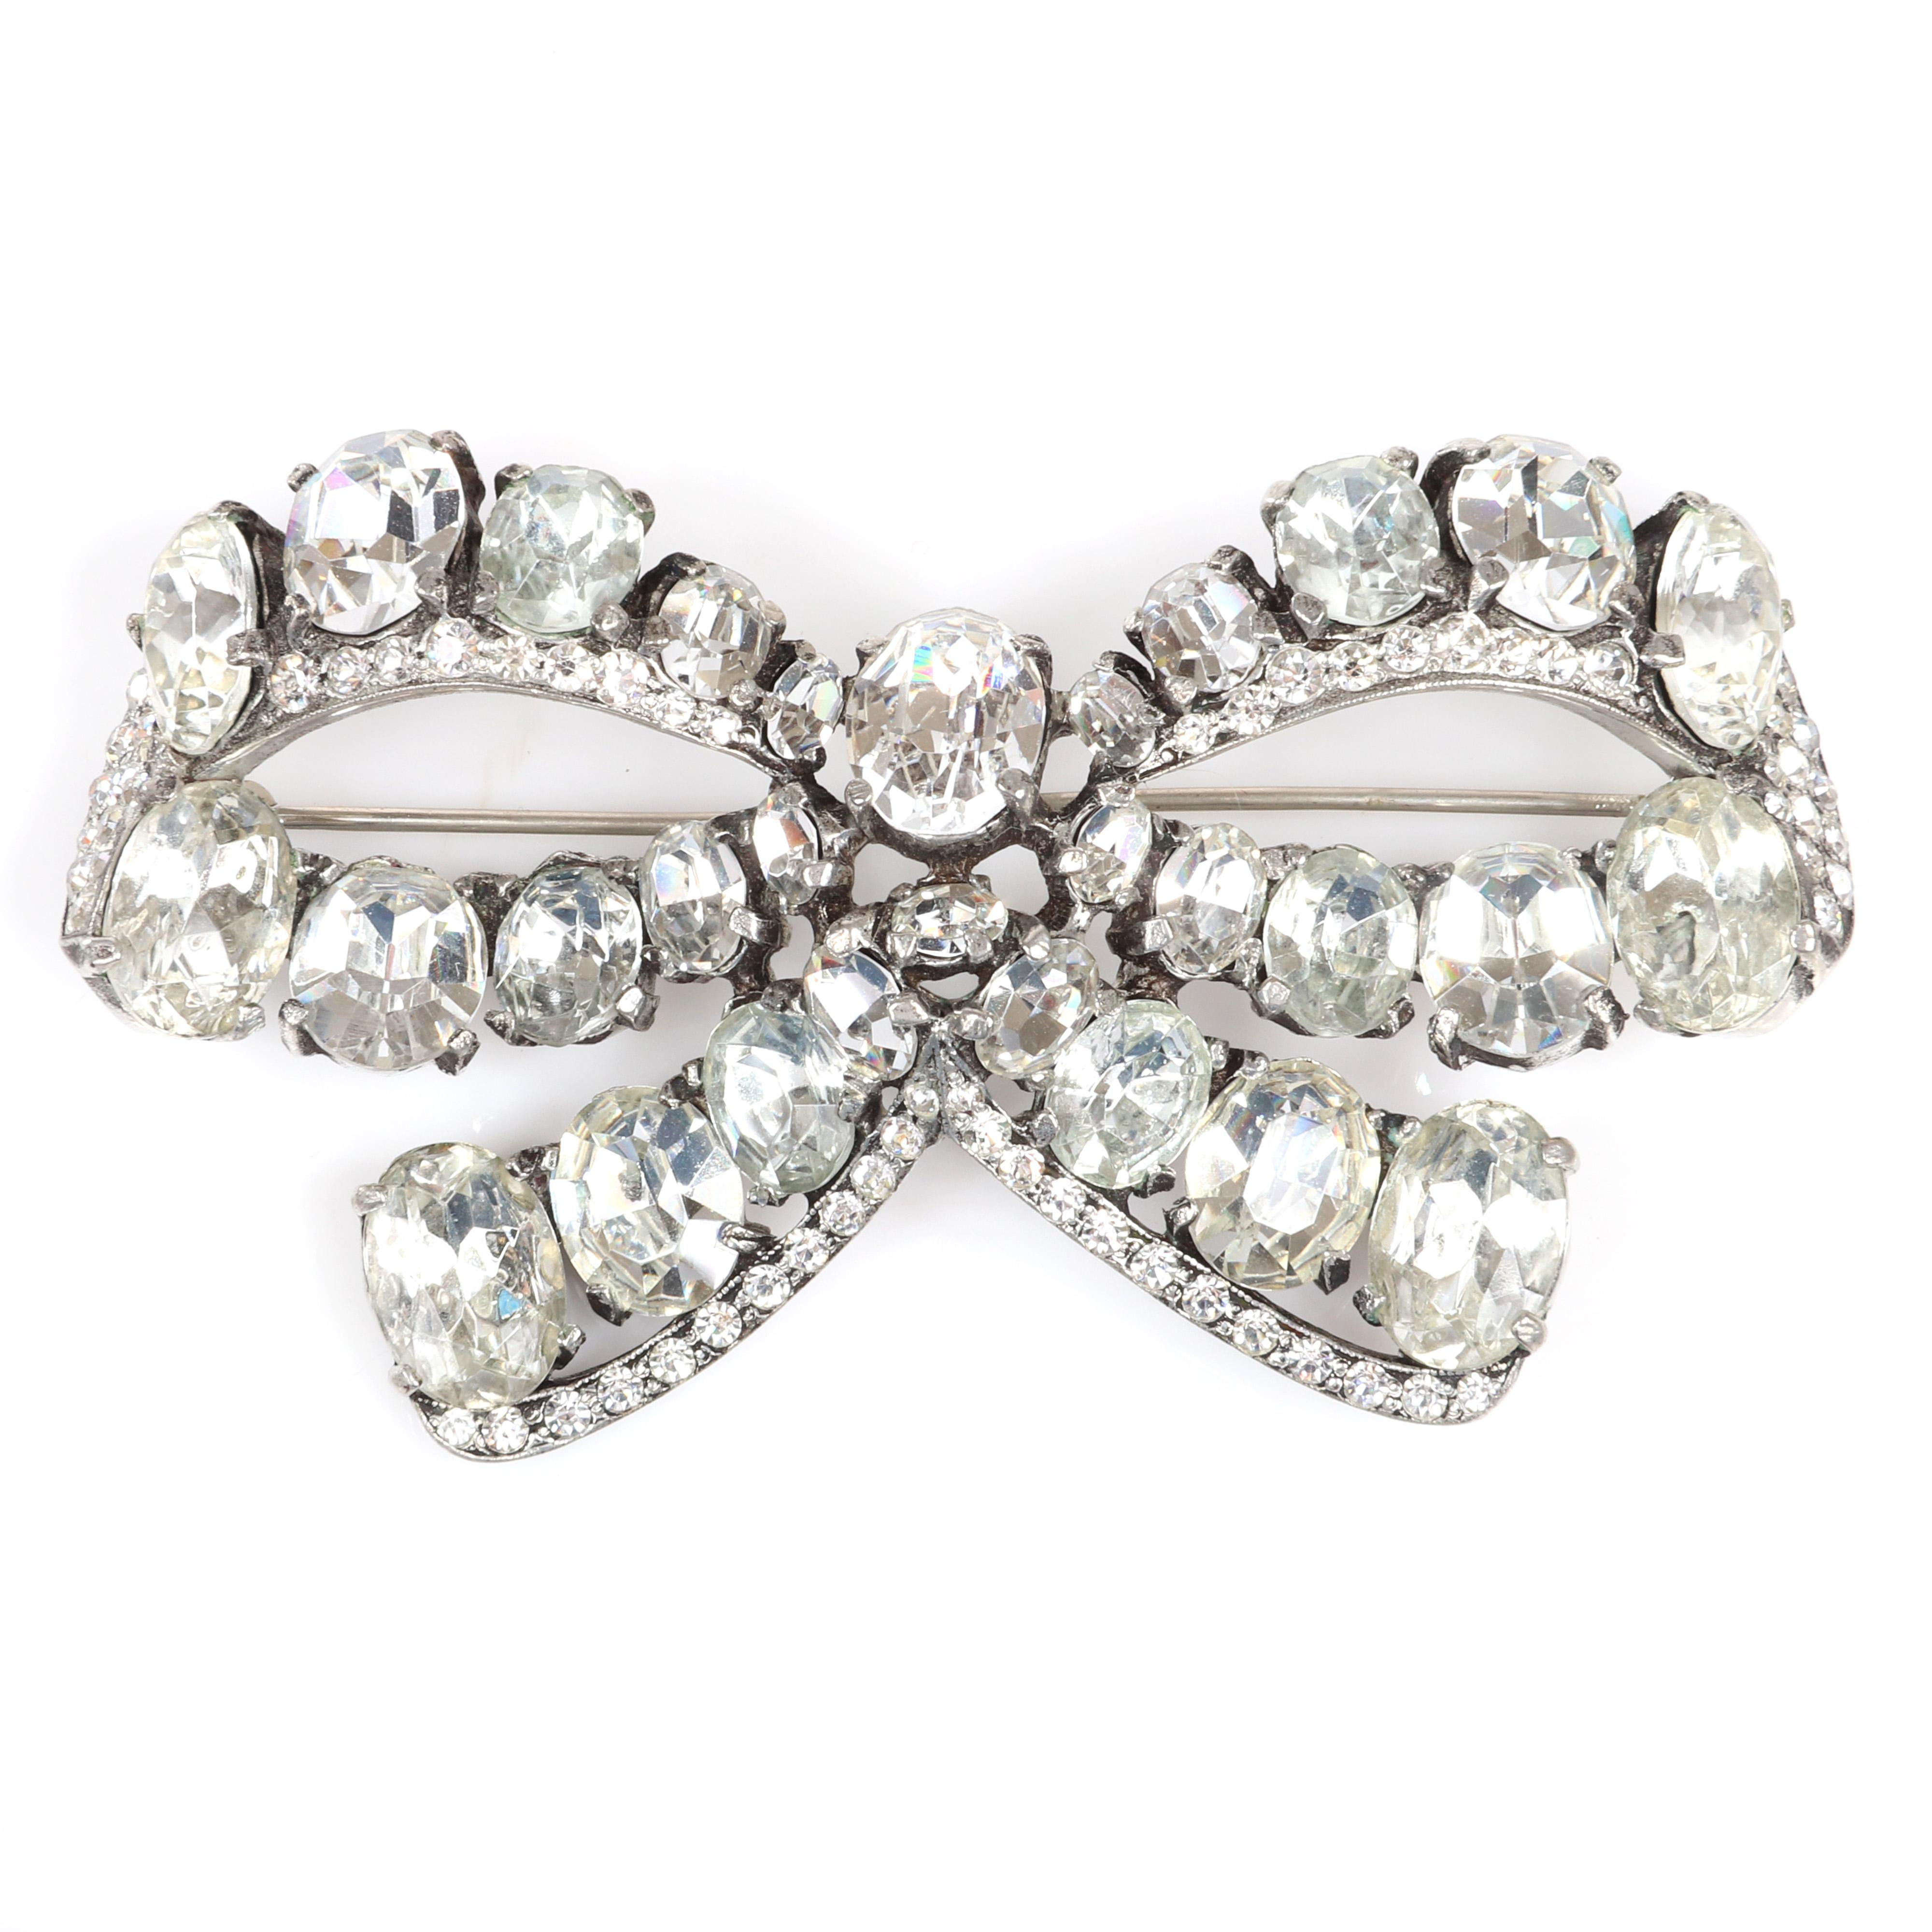 "Eisenberg Original large classic bow brooch with silver pot metal featuring large graduated oval clear crystals and pave, c. 1940. 2"" x 3 3/4"""